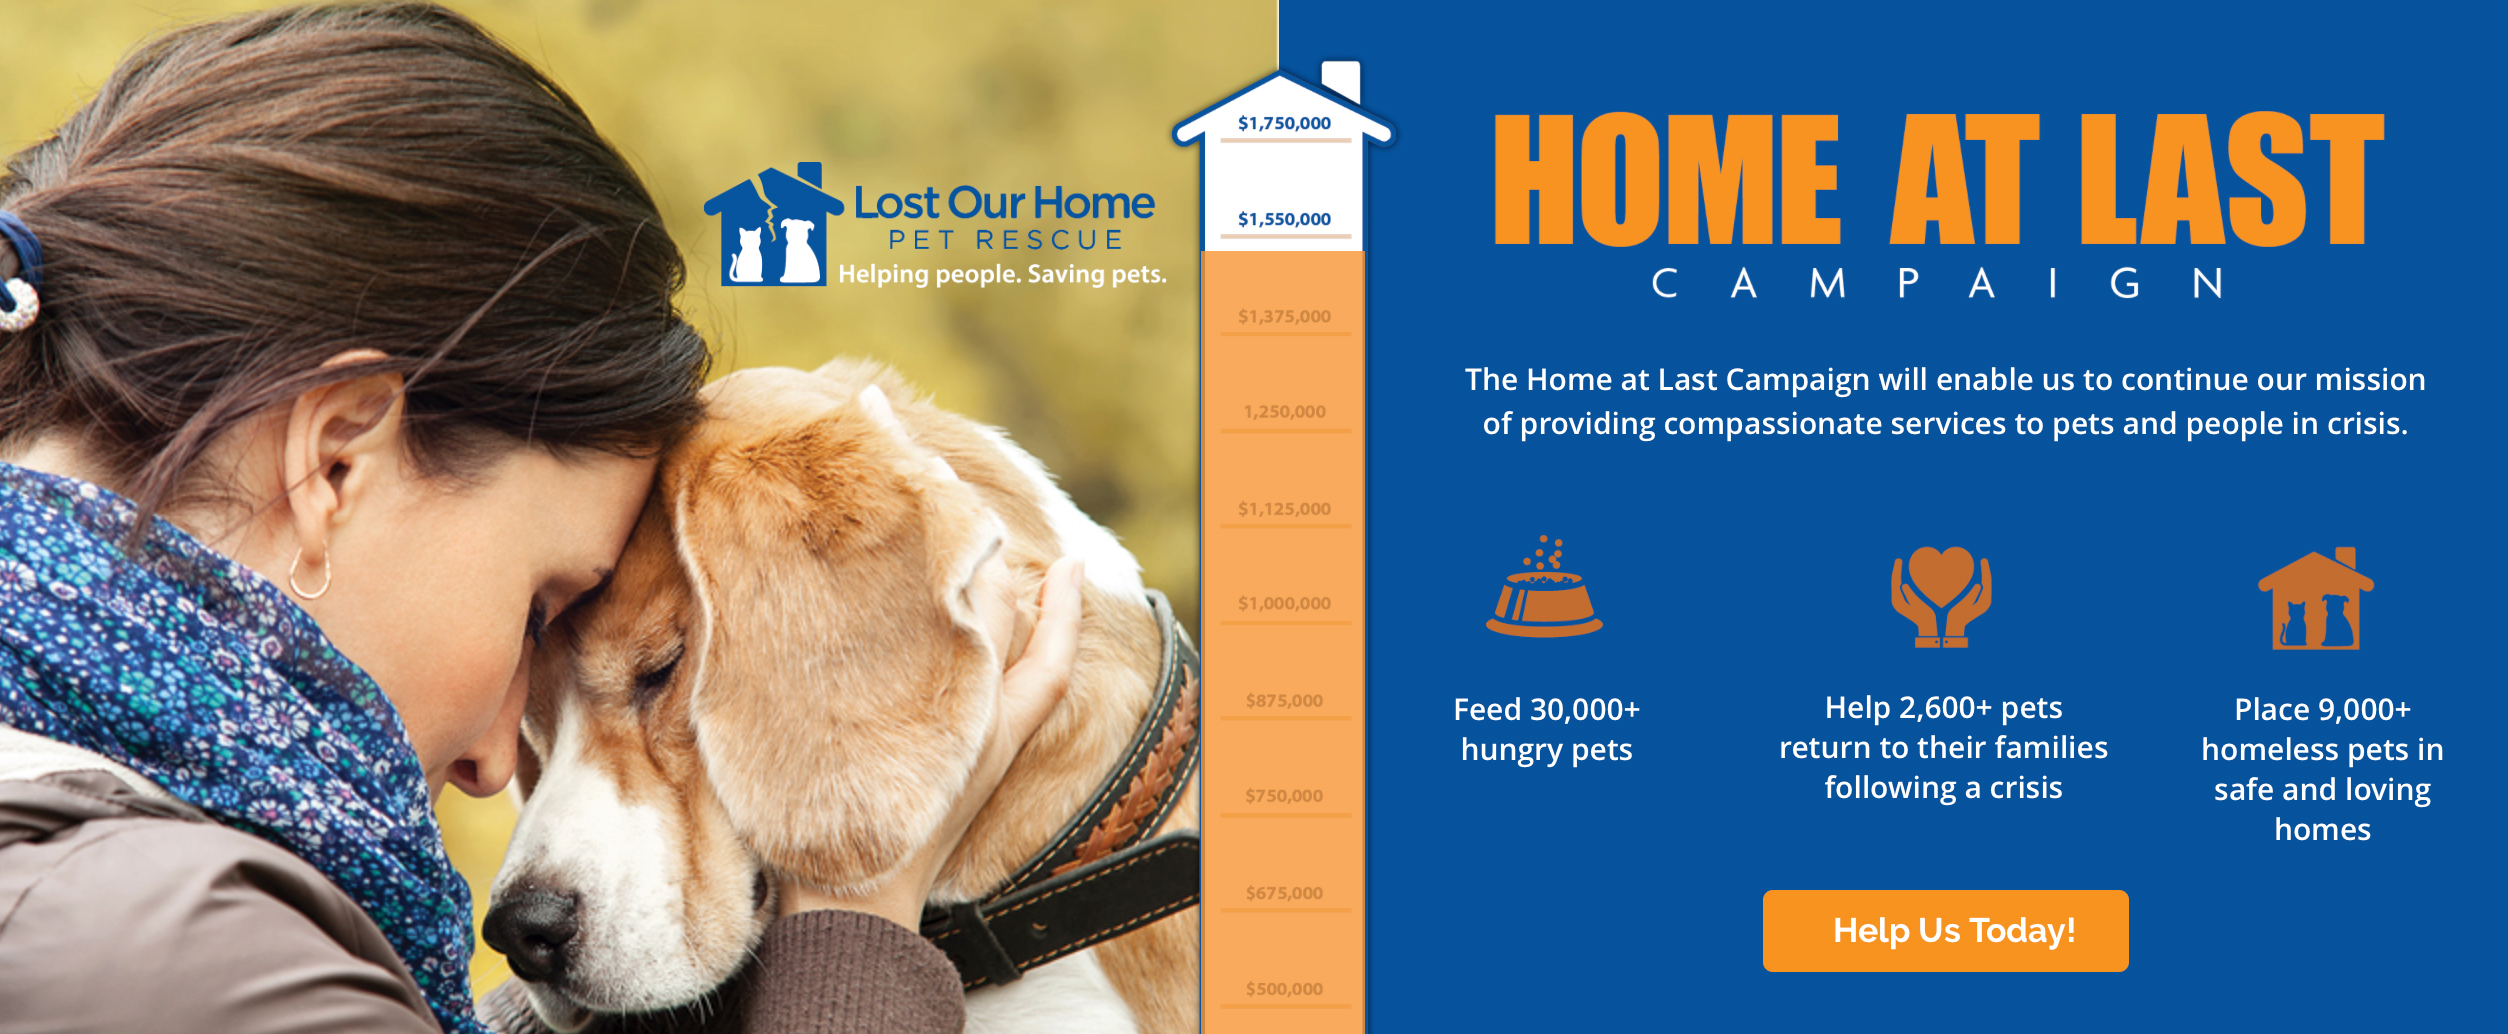 82e47d5fc4a6 Lost Our Home | Helping people. Saving pets.